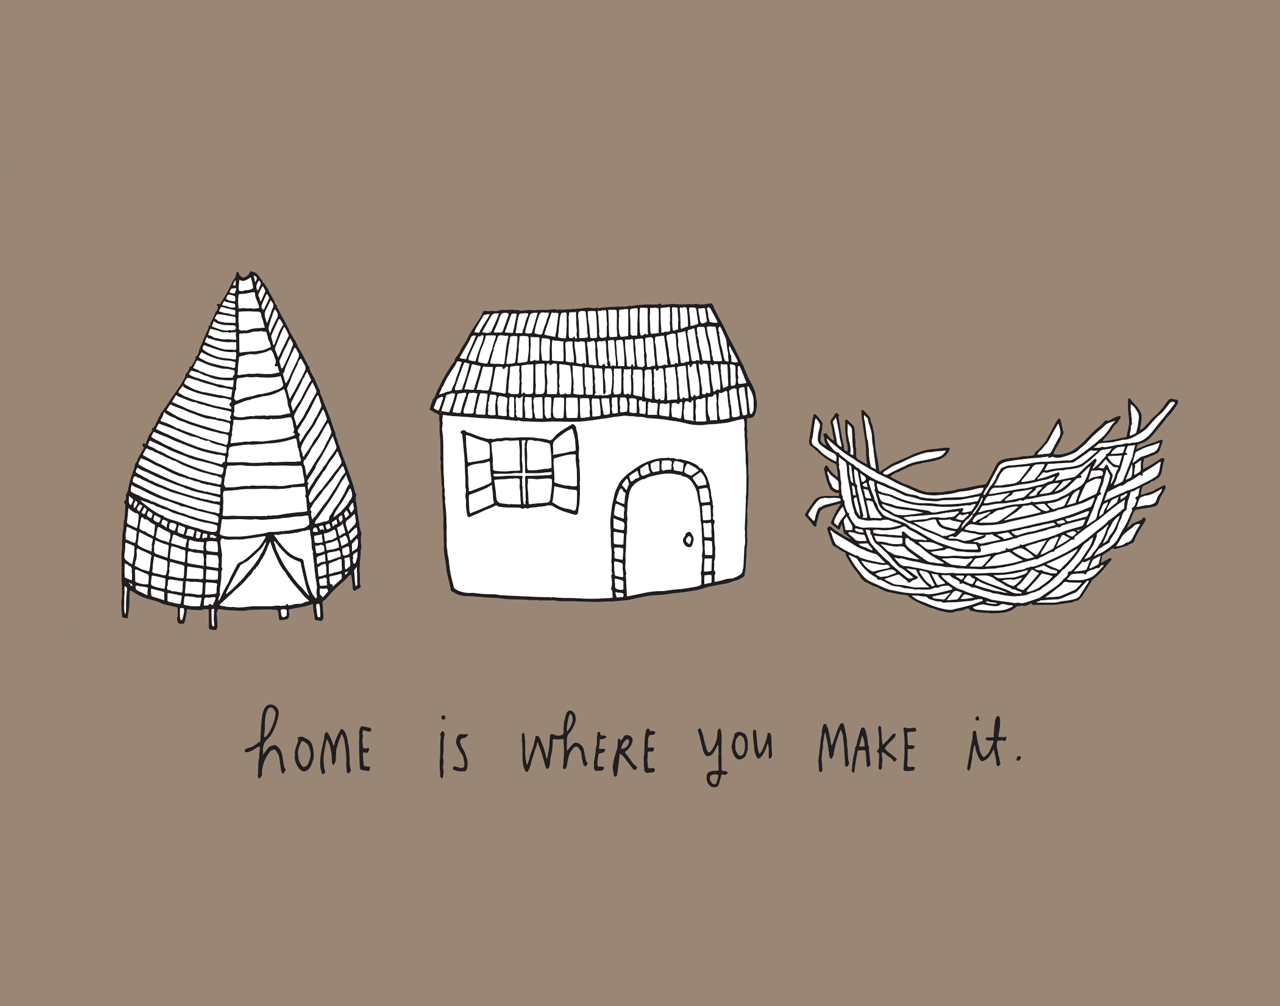 HOME-IS-WHERE-YOU-MAKE-IT